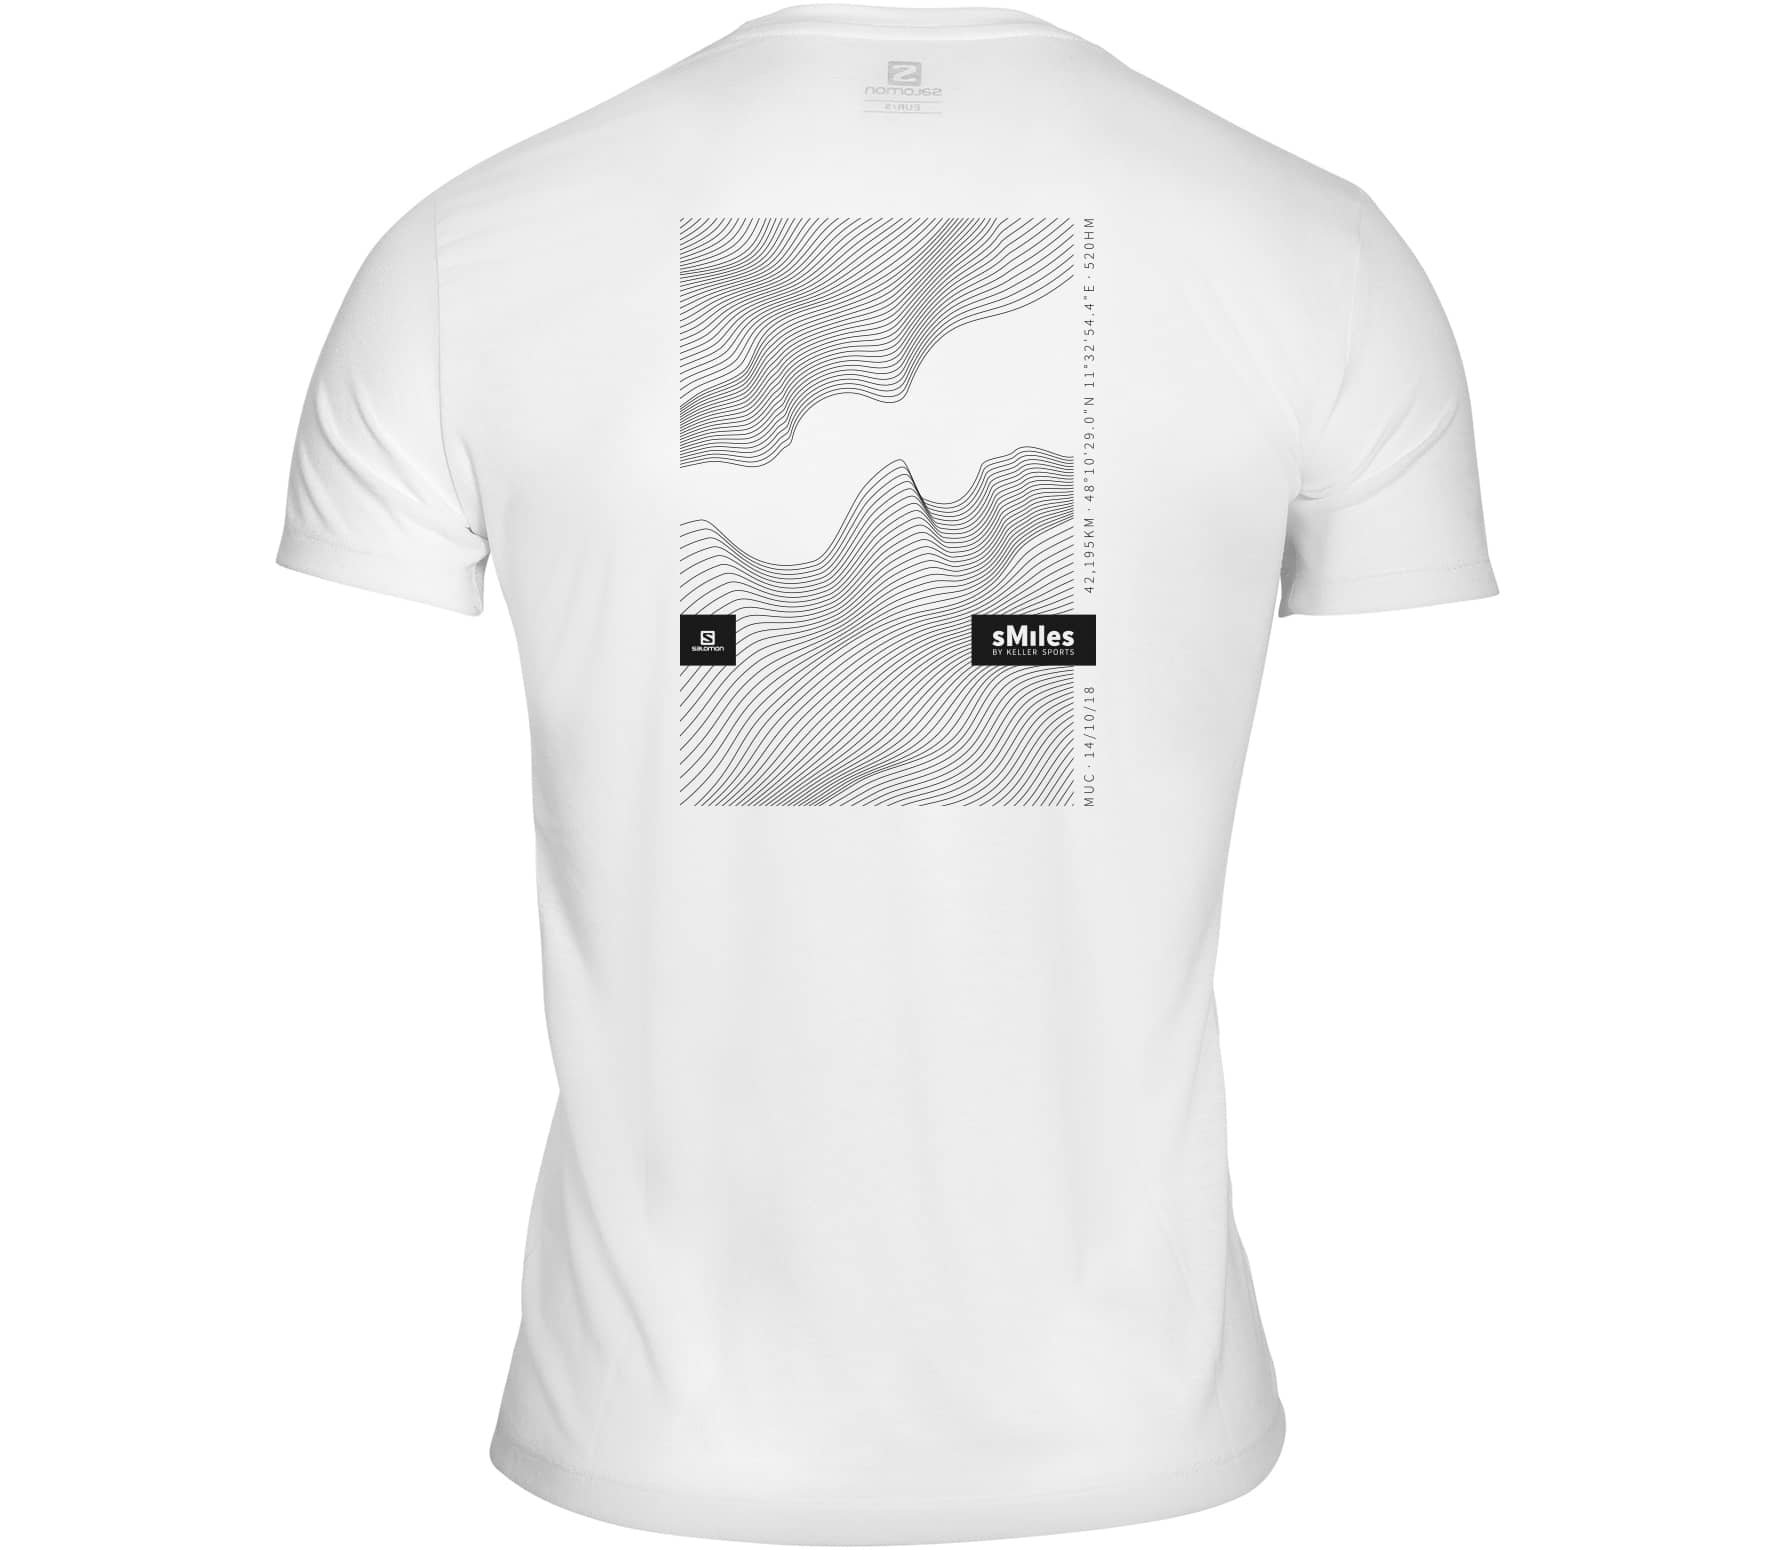 Salomon - x sMiles. by Keller Sports GMM Herren Laufshirt (weiß)